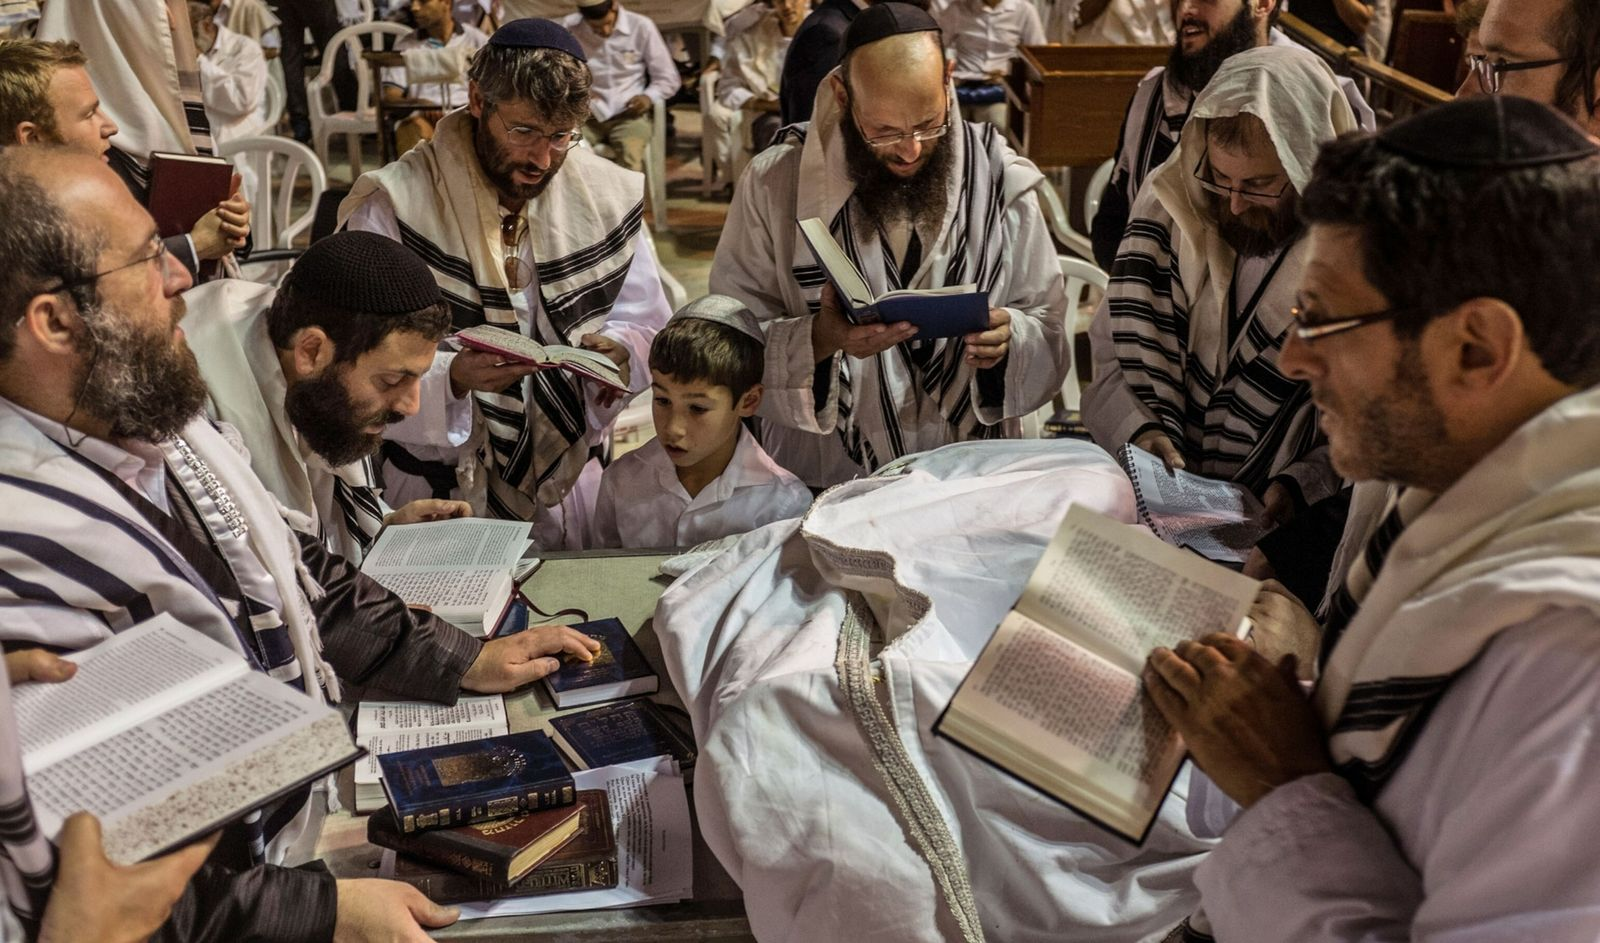 Why Yom Kippur is the holiest day of the Jewish year - National Geographic UK